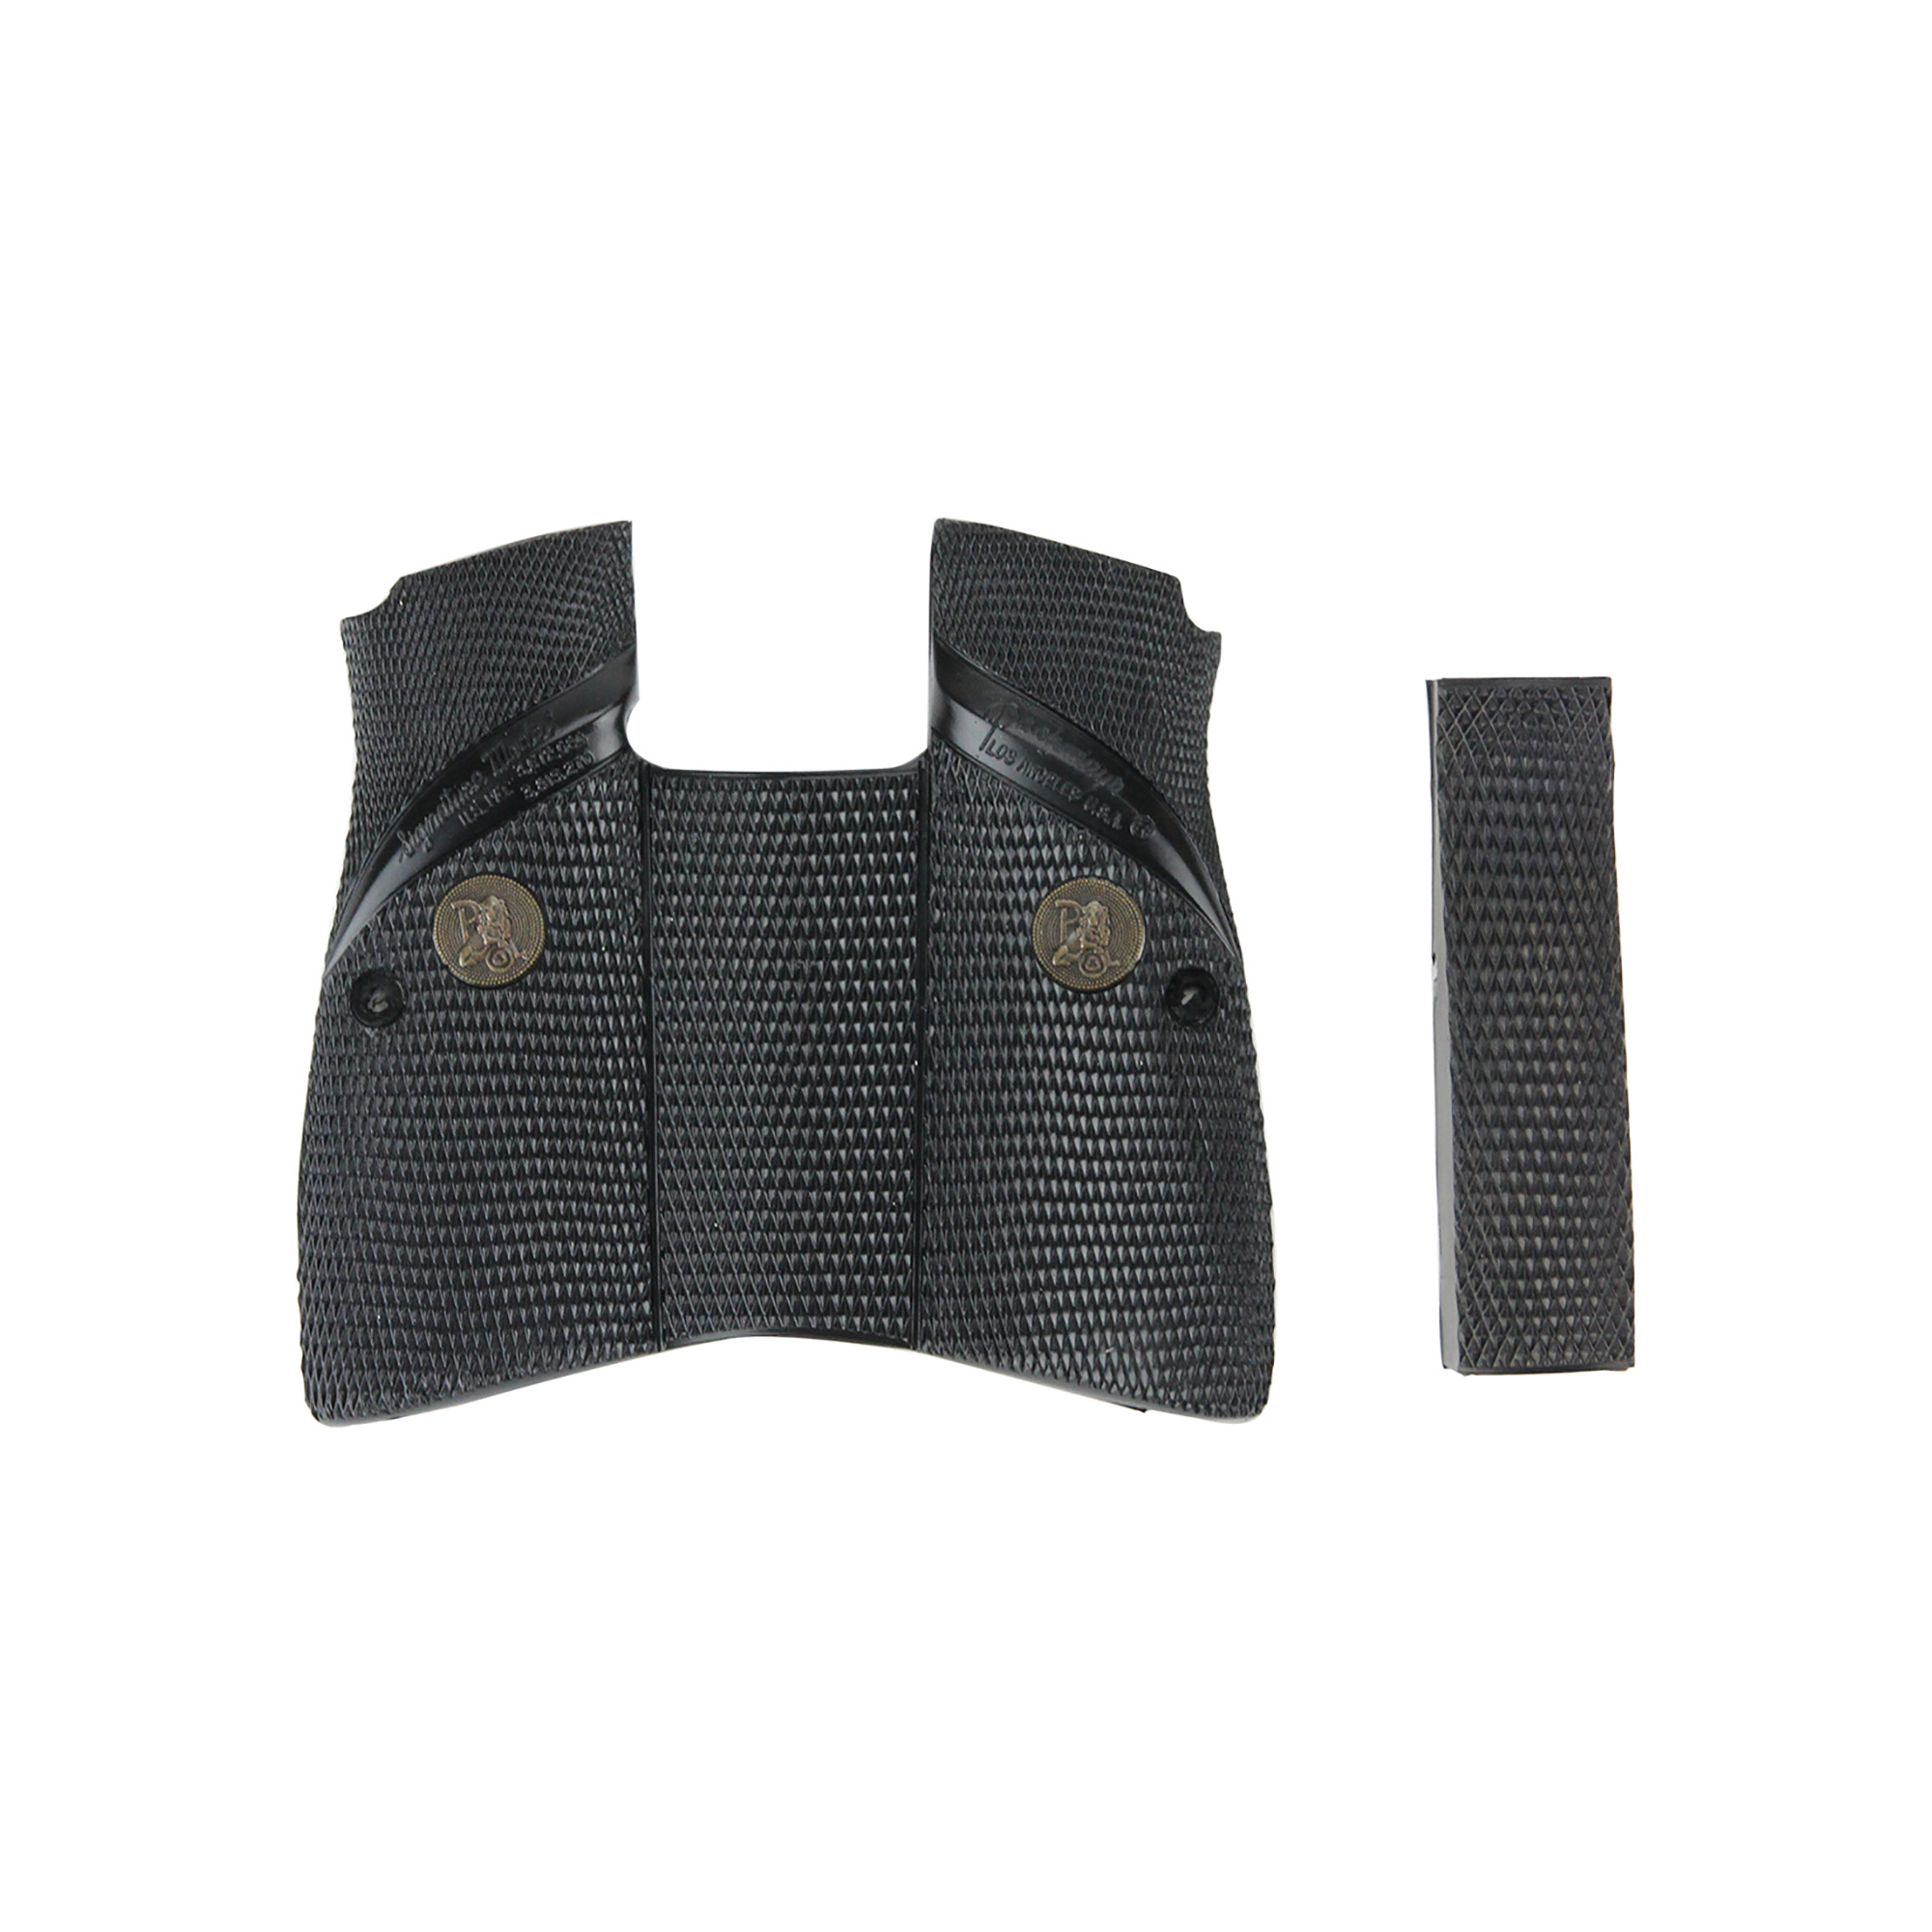 Pachmayr Signature Grips feature our unique full wrap-around design and are made from rubber specially formulated for use on semi-automatic pistols. This rubber compound gives them a feel that is unmistakably Pachmayr. Built-in steel inserts ensure they maintain their shape. Signature Grips are the overwhelming choice of competitive shooters and law enforcement personnel alike.